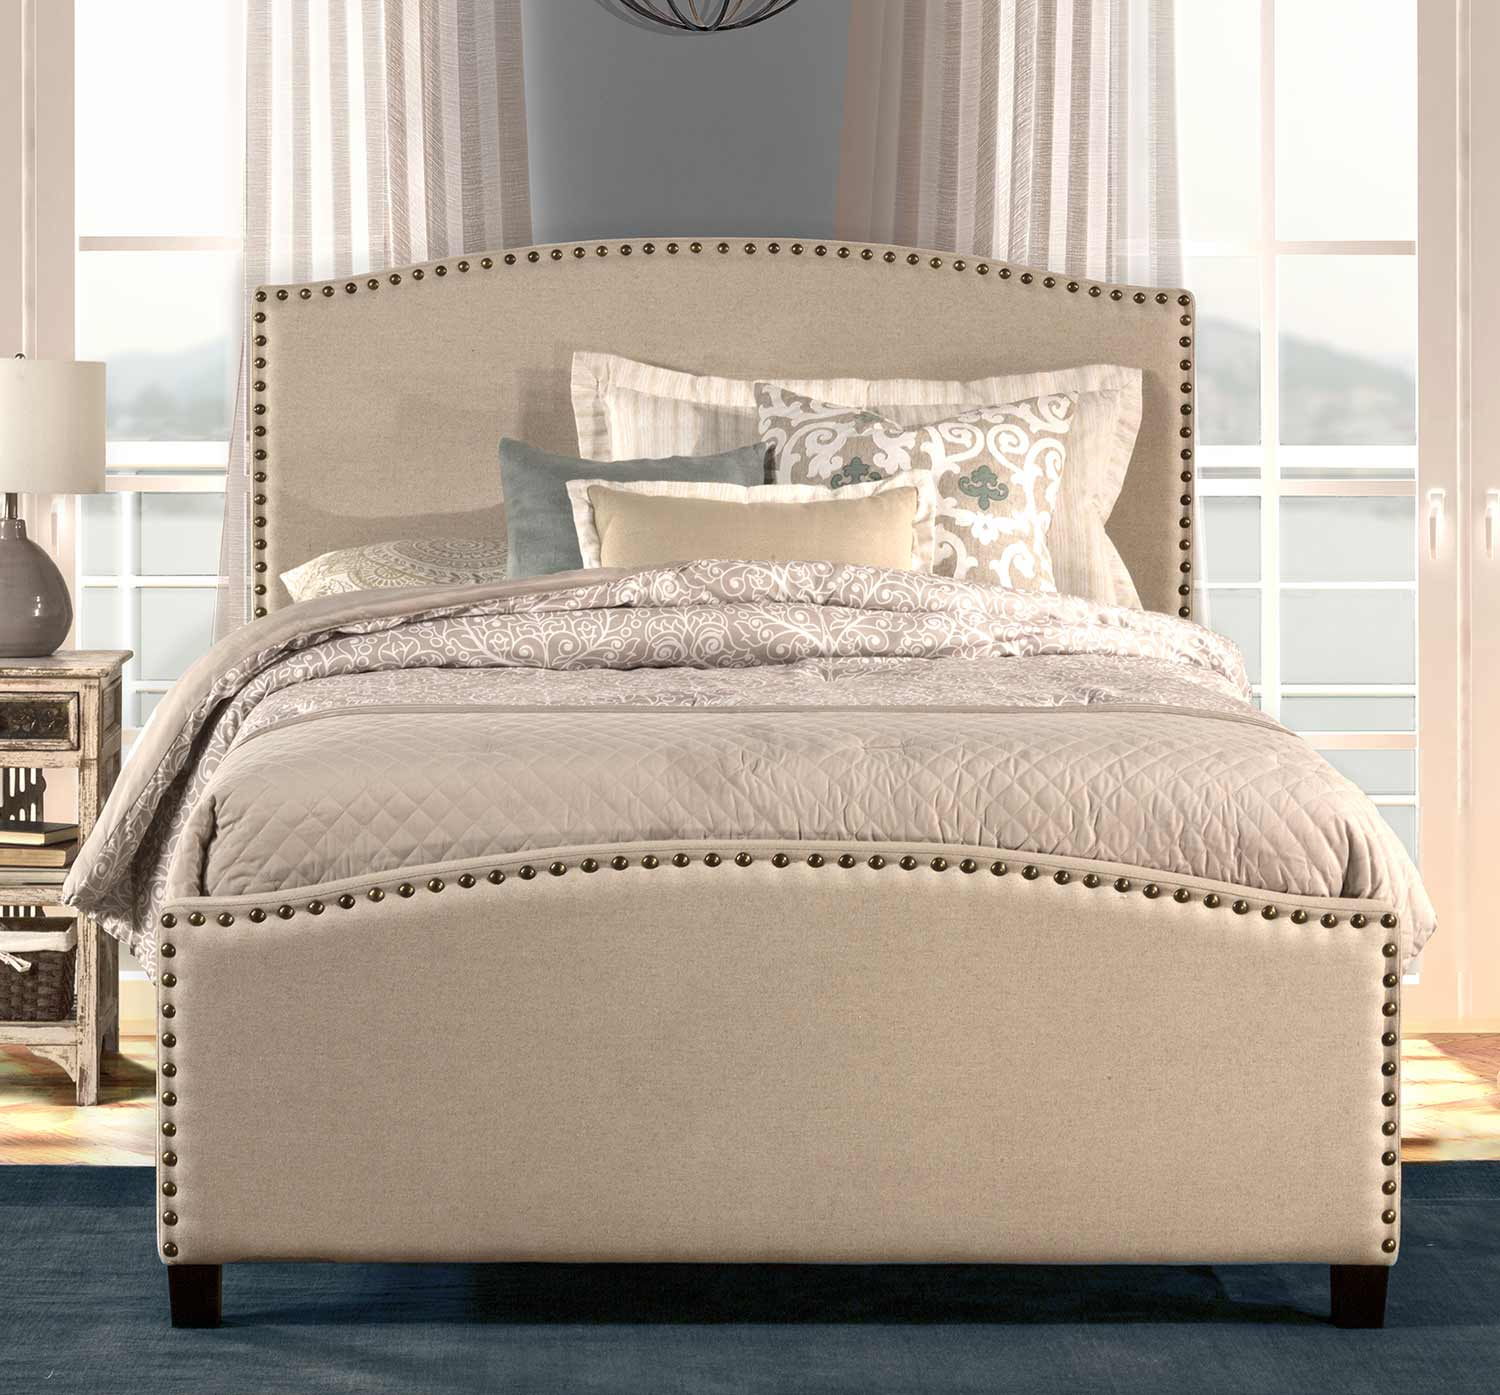 Hillsdale Kerstein Bed - Light Taupe